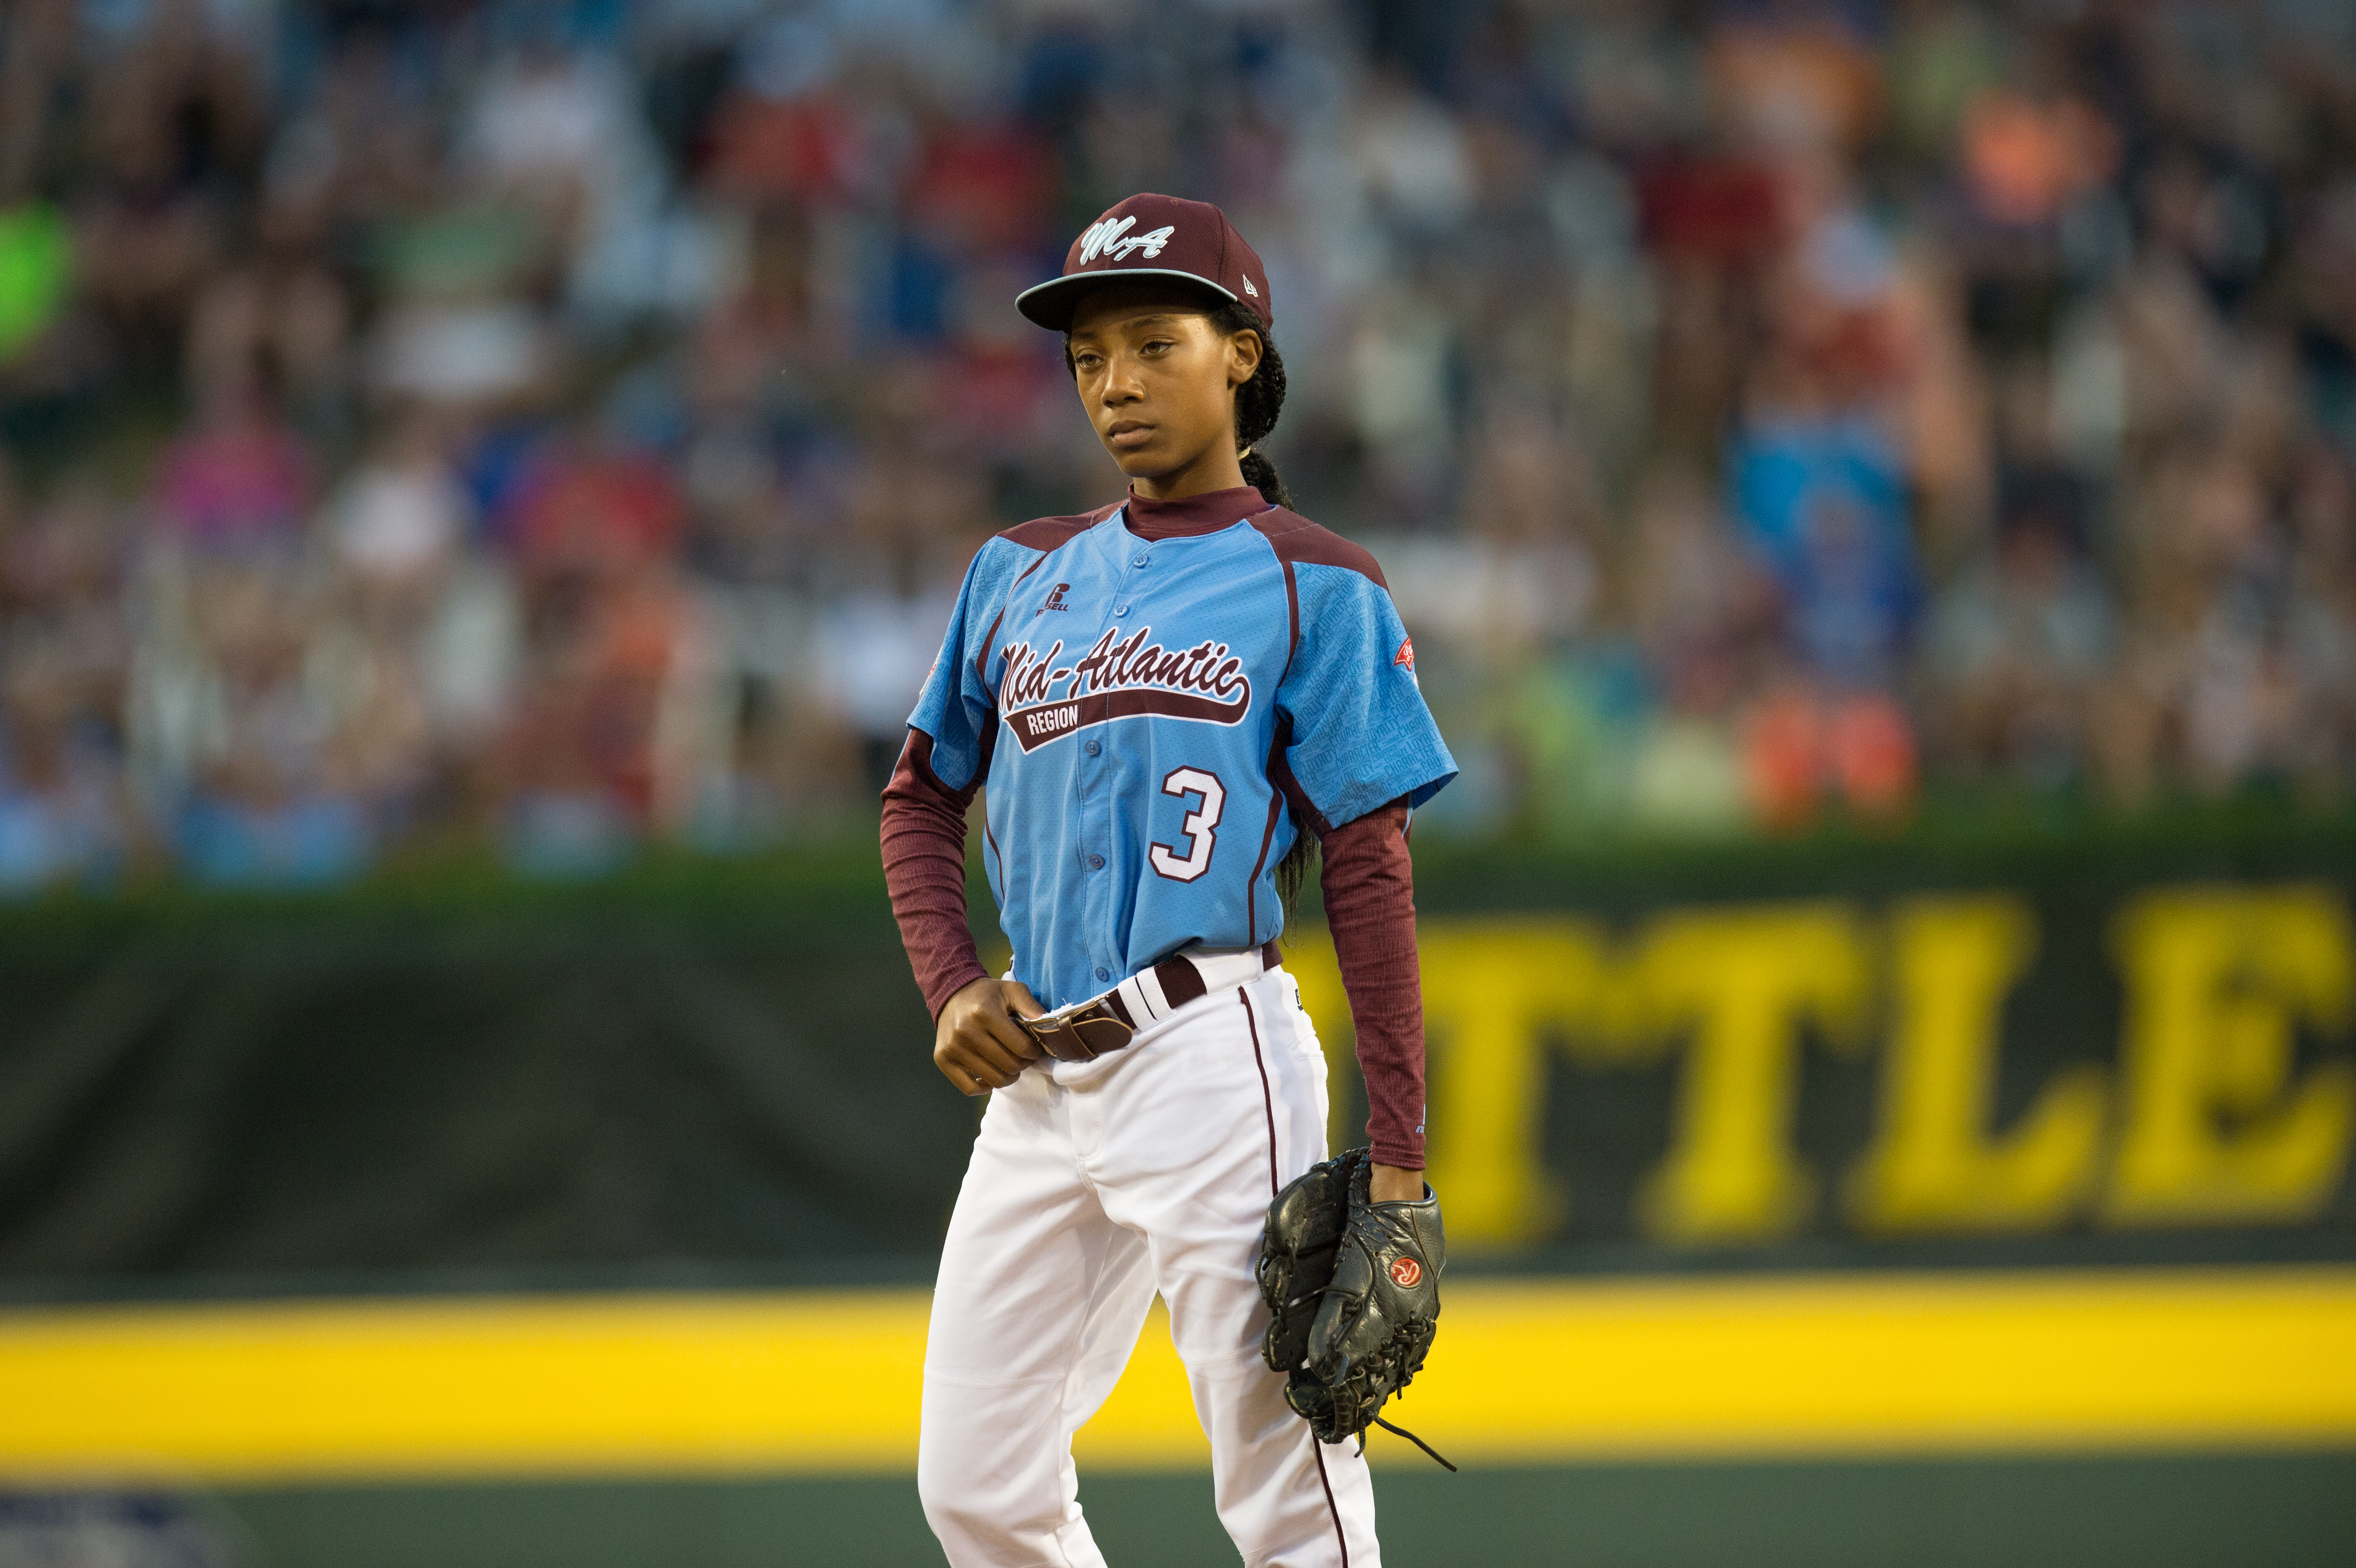 Starting pitcher Mo'ne Davis #3 of Pennsylvania pitches during the 2014 Little League World Series at Lamade Stadium on Aug. 20, 2014 in Williamsport, Penn.